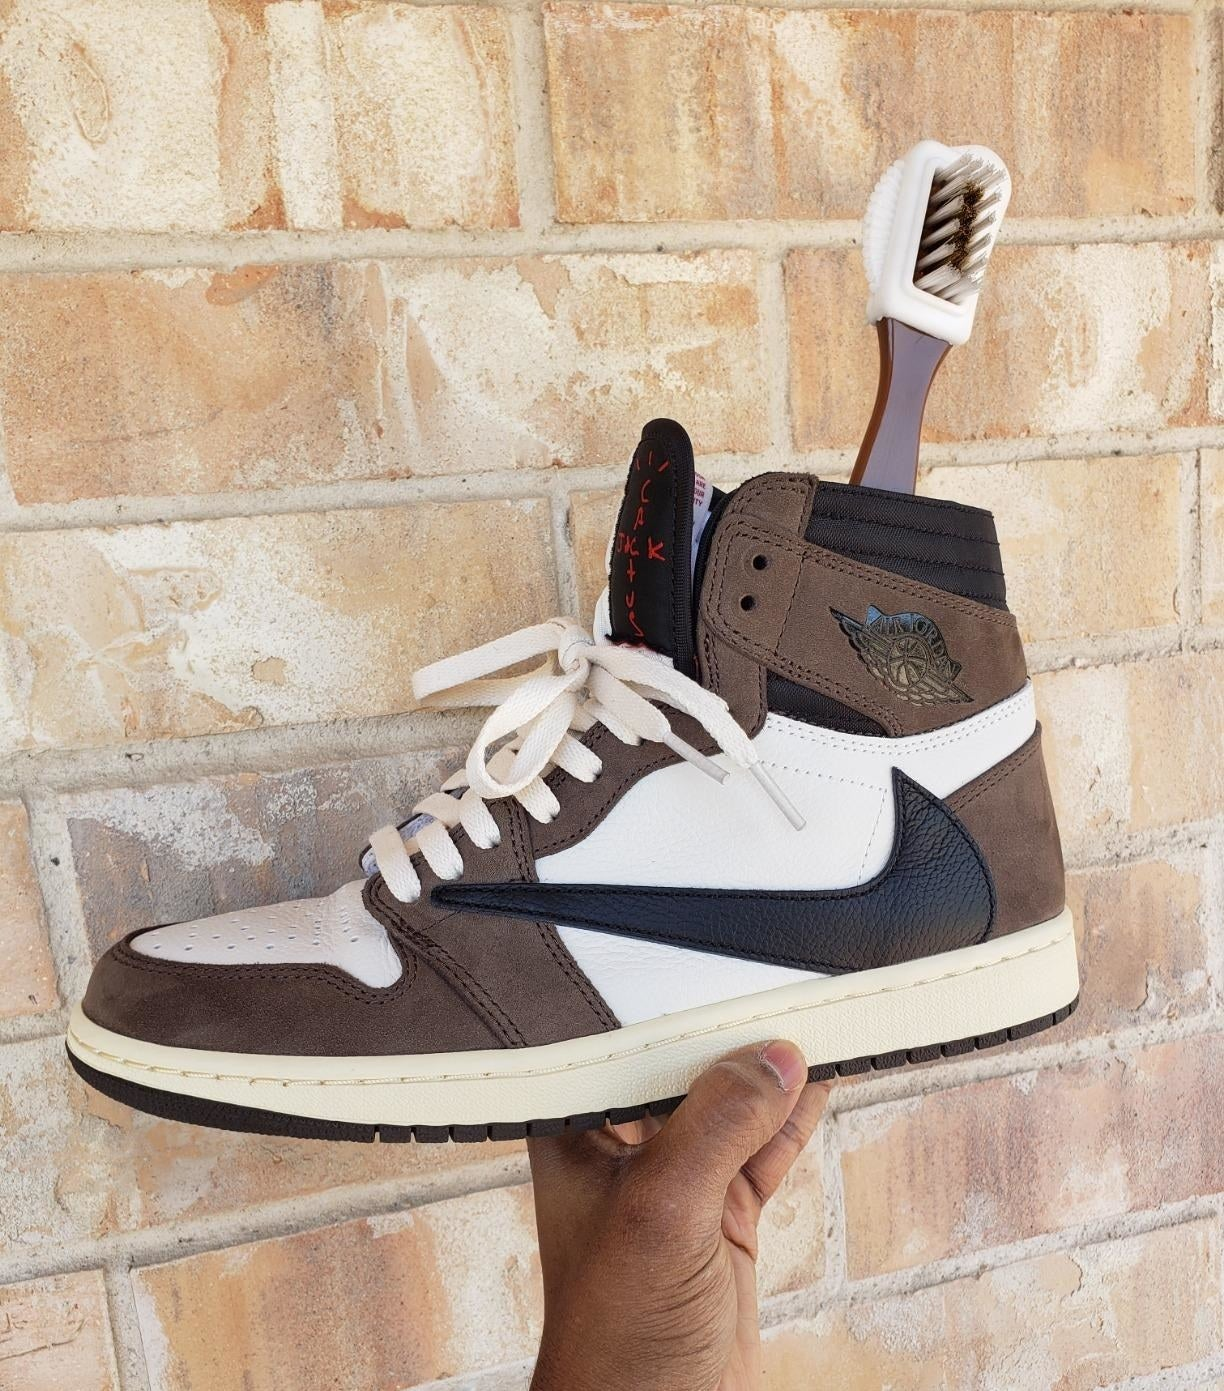 reviewer holing up their Travis Scott jordan 1 sneakers with the suede brush